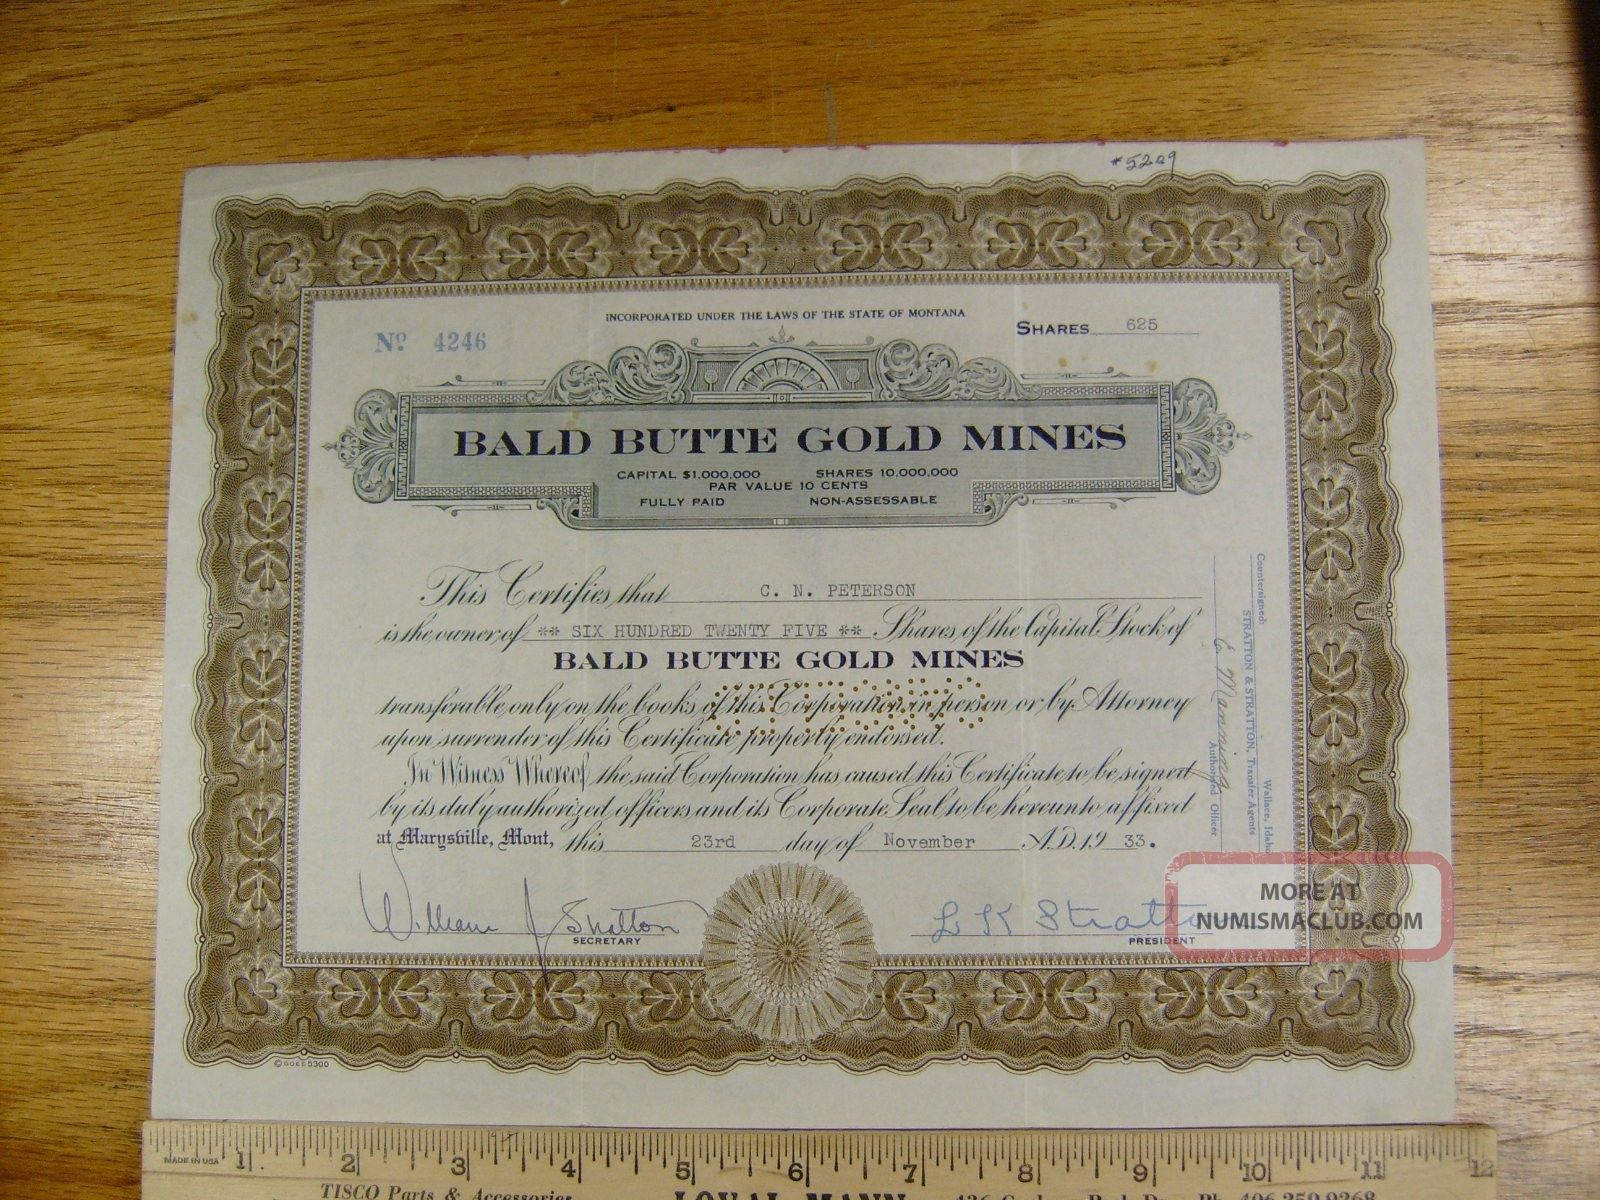 1933 Bald Butte Gold Mines Stock Certificate Marysville,  Montana Low Stocks & Bonds, Scripophily photo